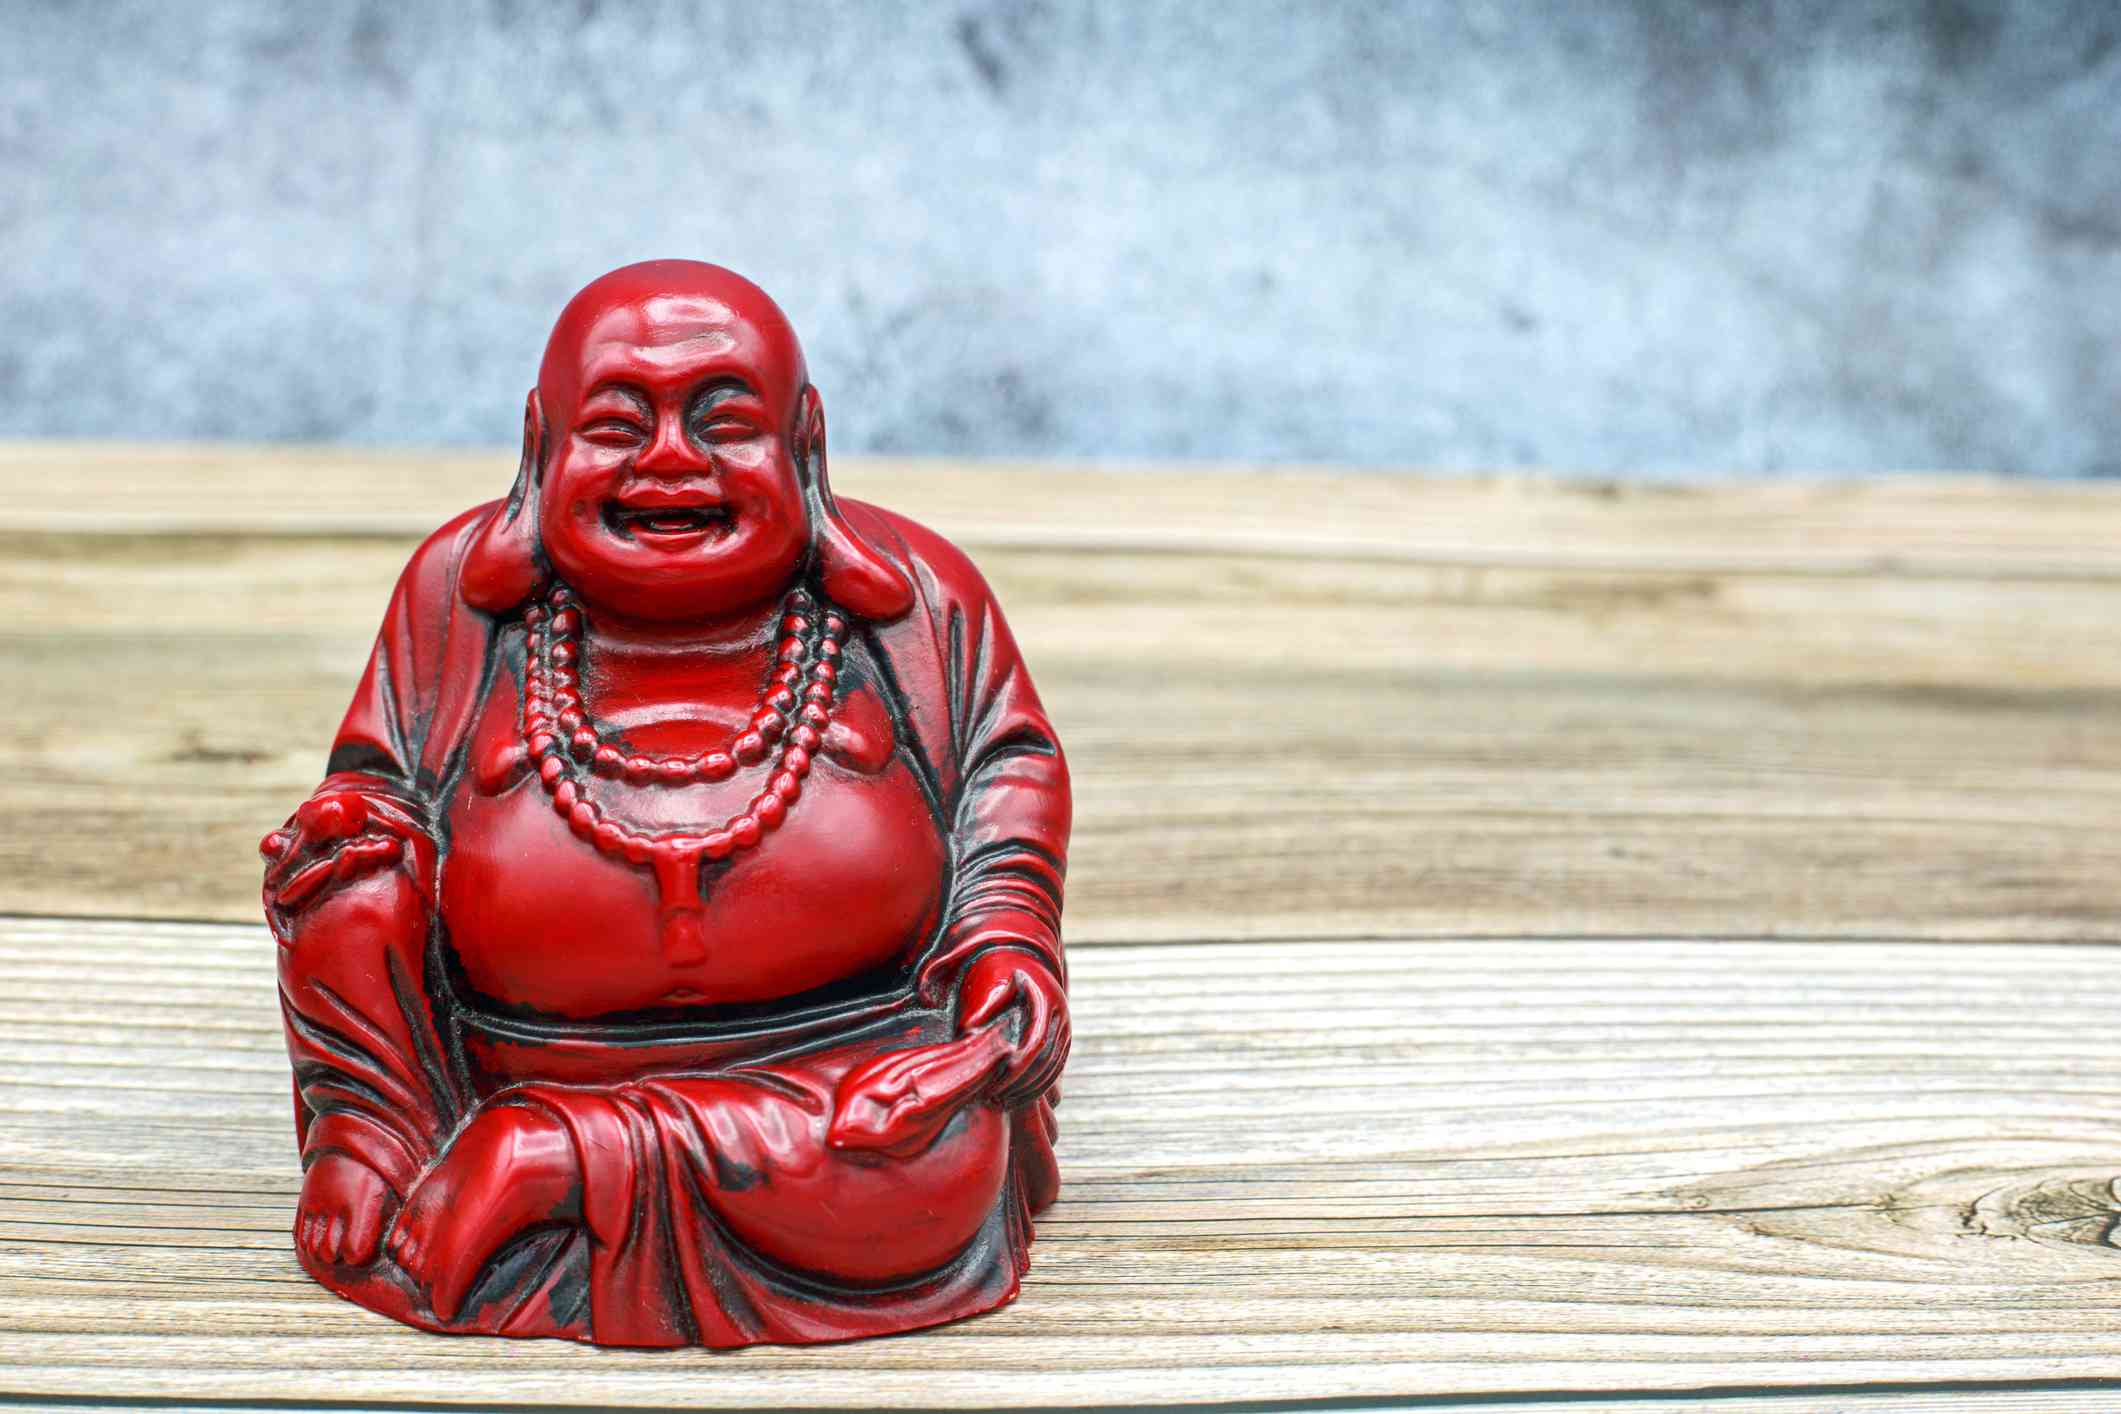 Small figurine of the Laughing Buddha, also called Budai or Maitreya Buddha, a Chinese monk from the 10th century.